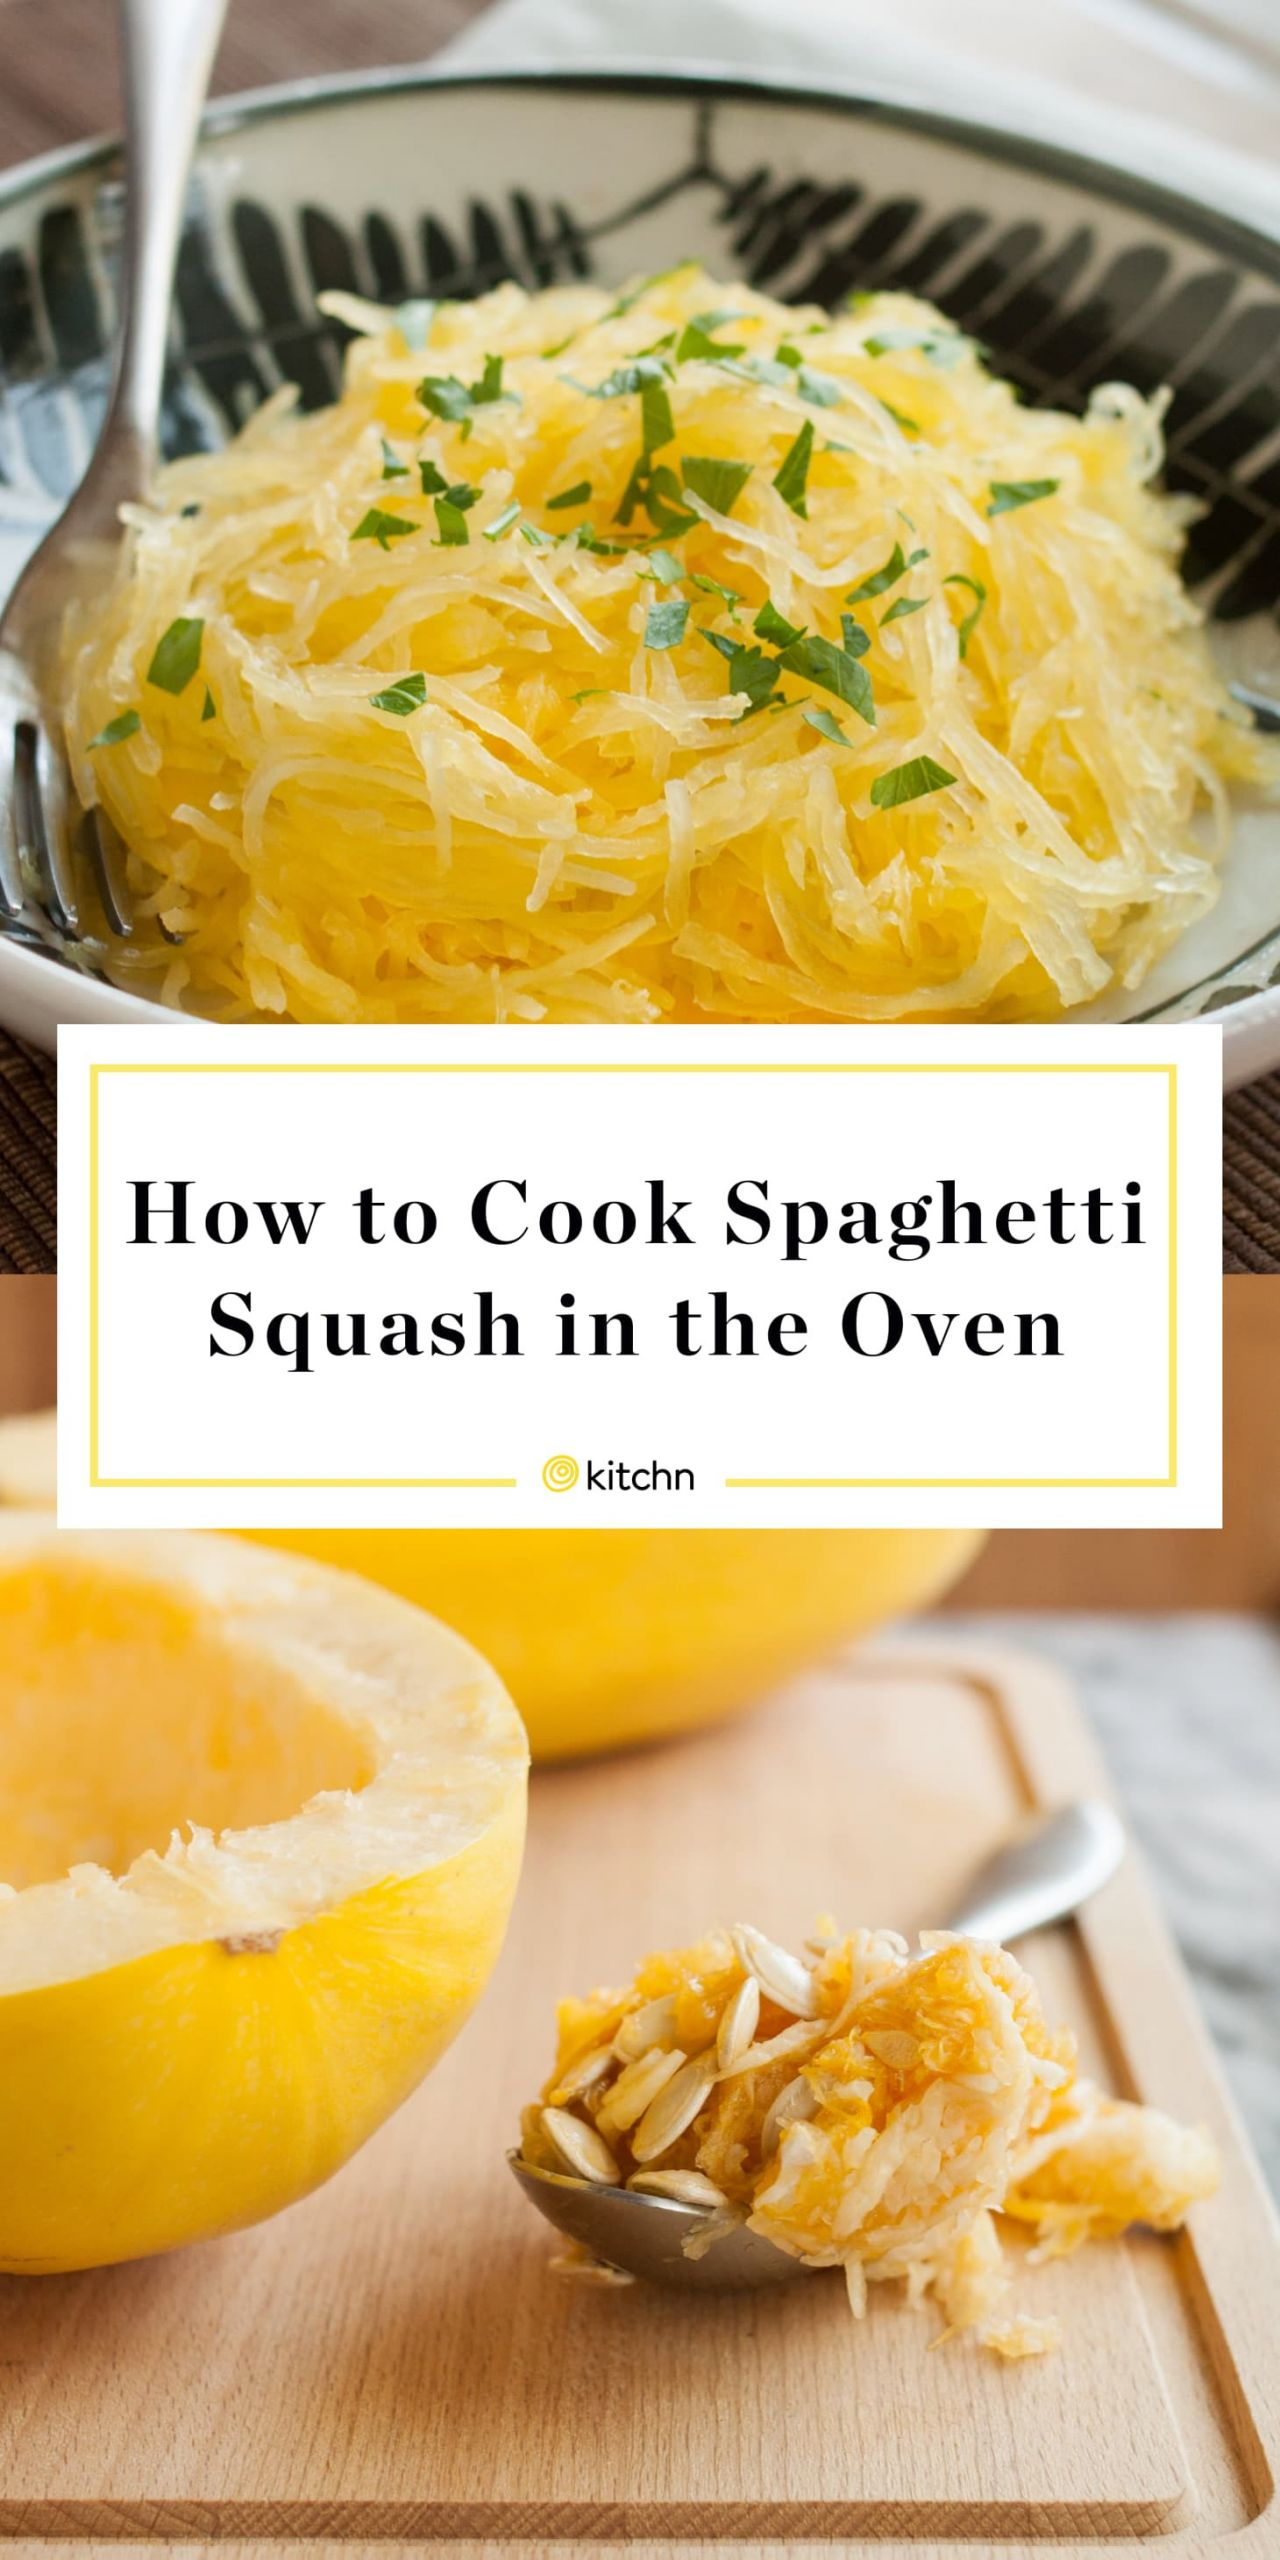 Cook Spaghetti Squash Microwave  How To Cook Spaghetti Squash in the Oven